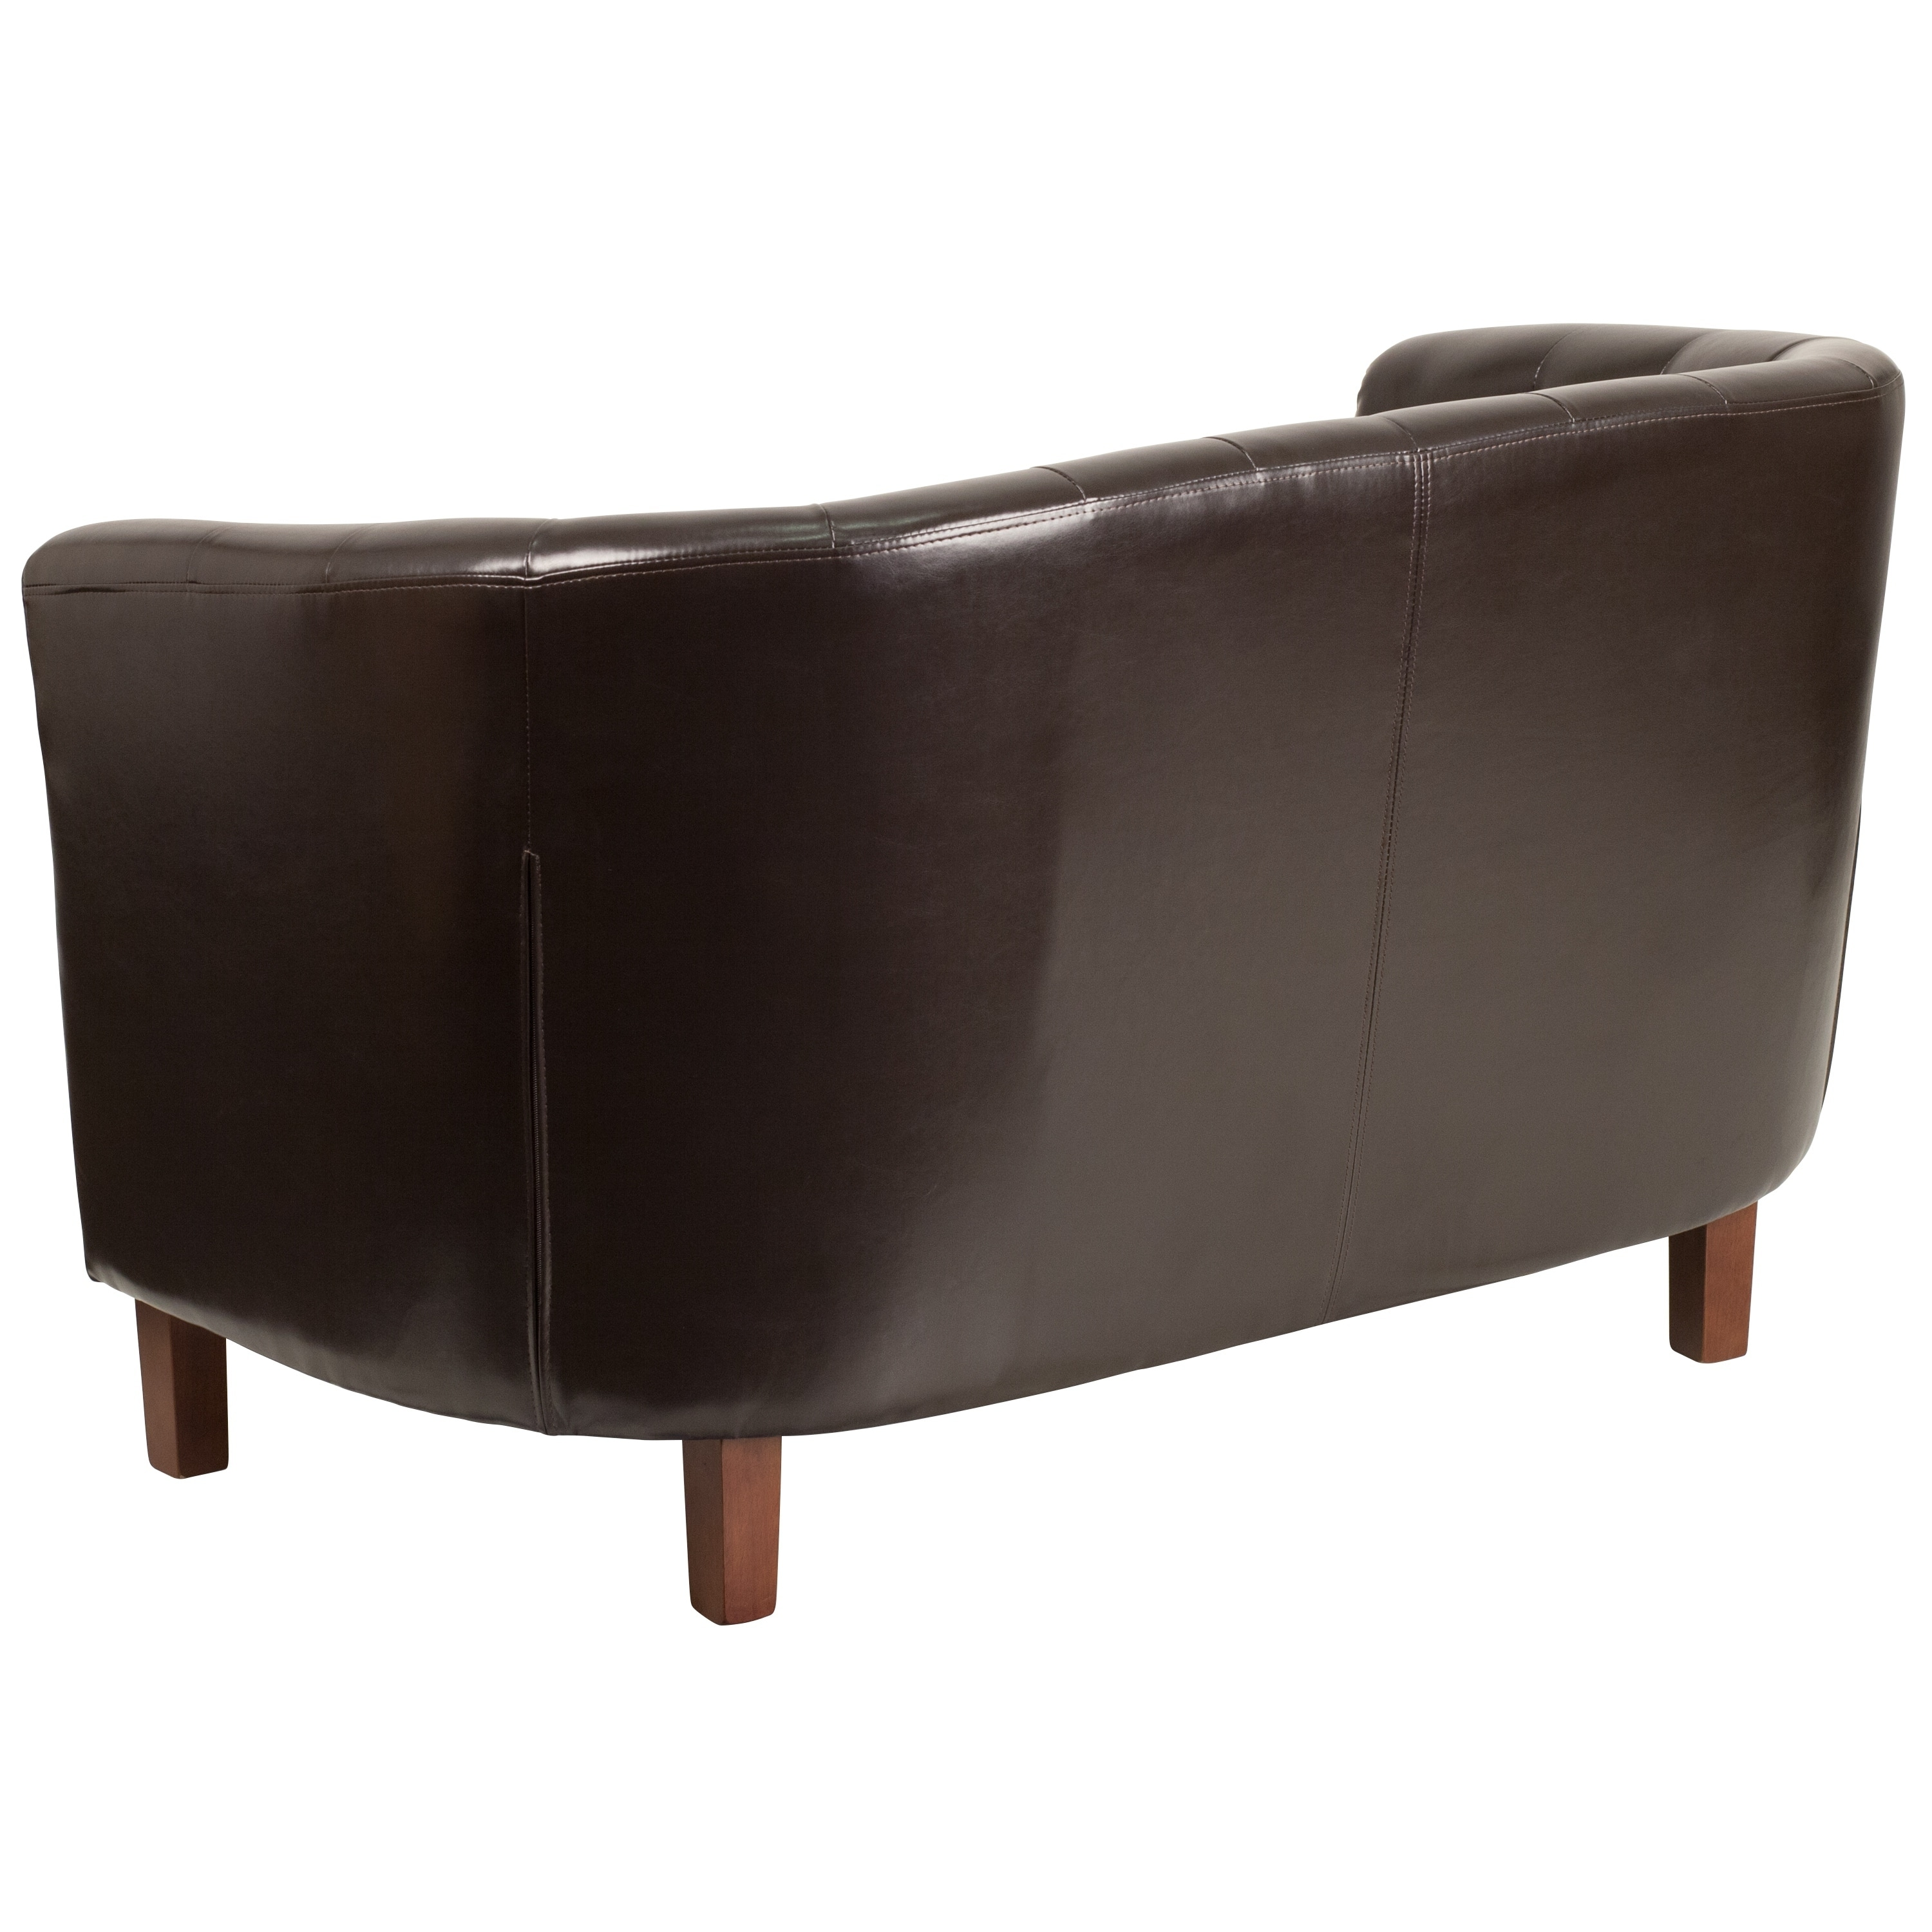 Phenomenal Tufted Loveseat Gmtry Best Dining Table And Chair Ideas Images Gmtryco